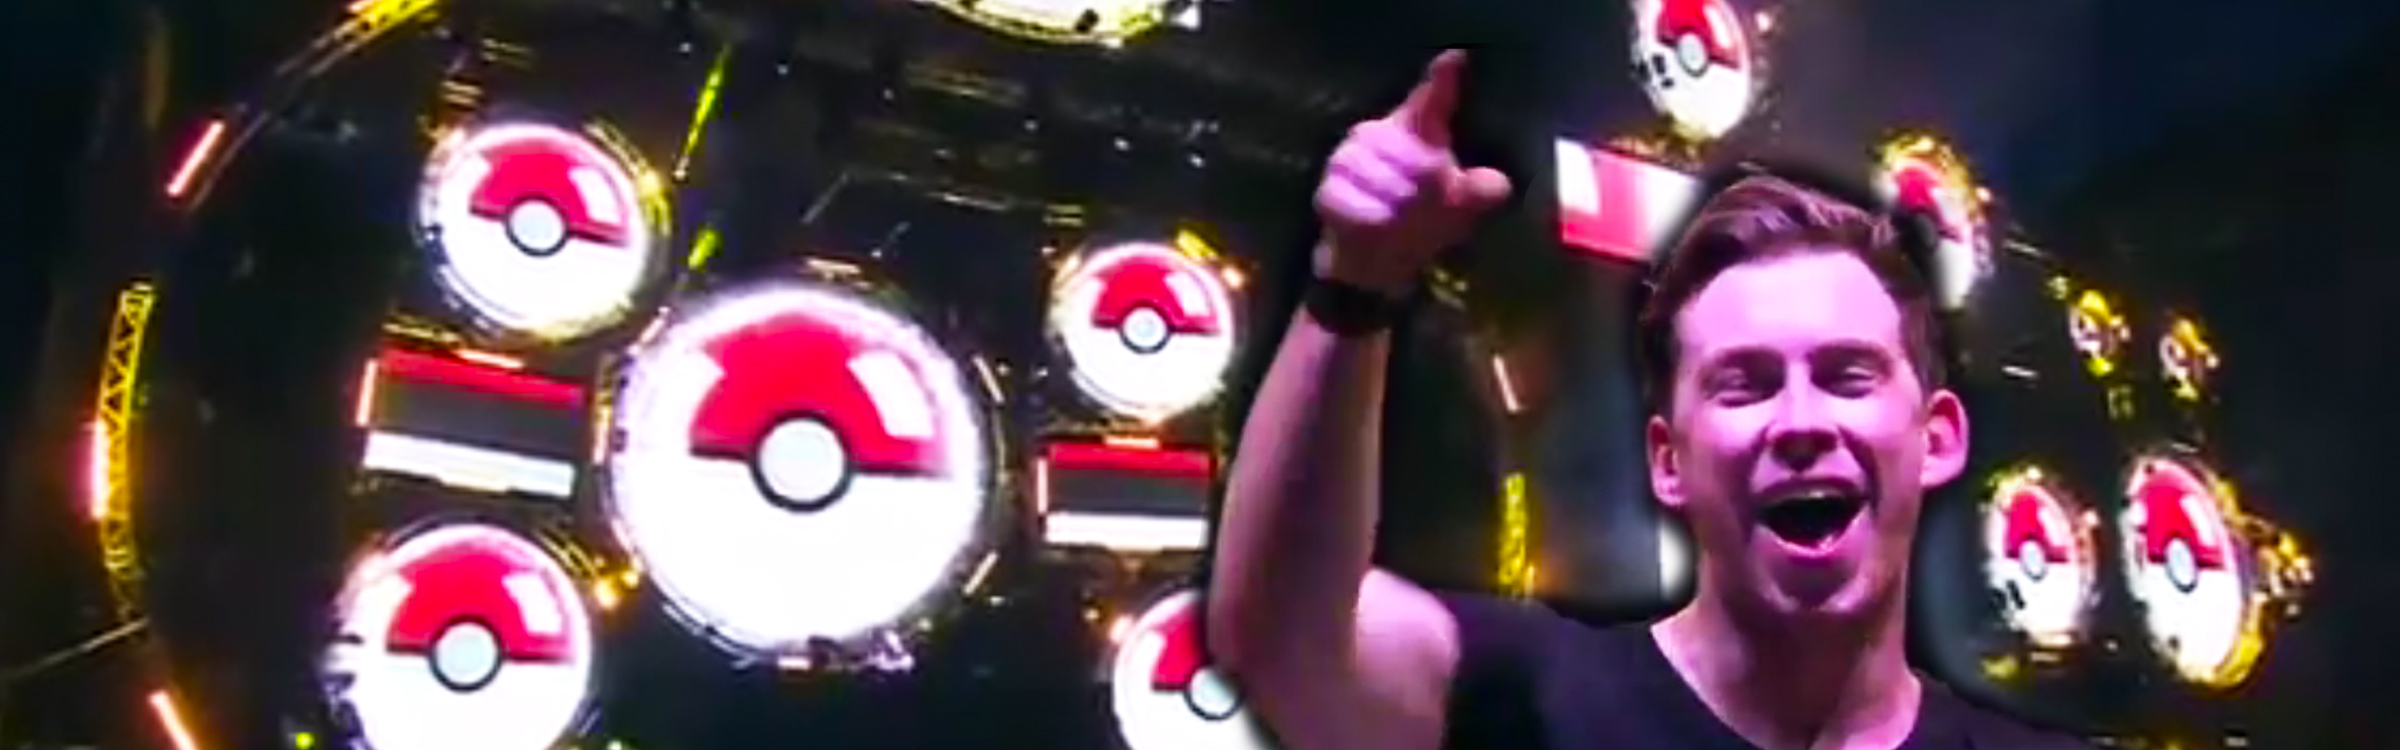 Hardwell pokemon 2